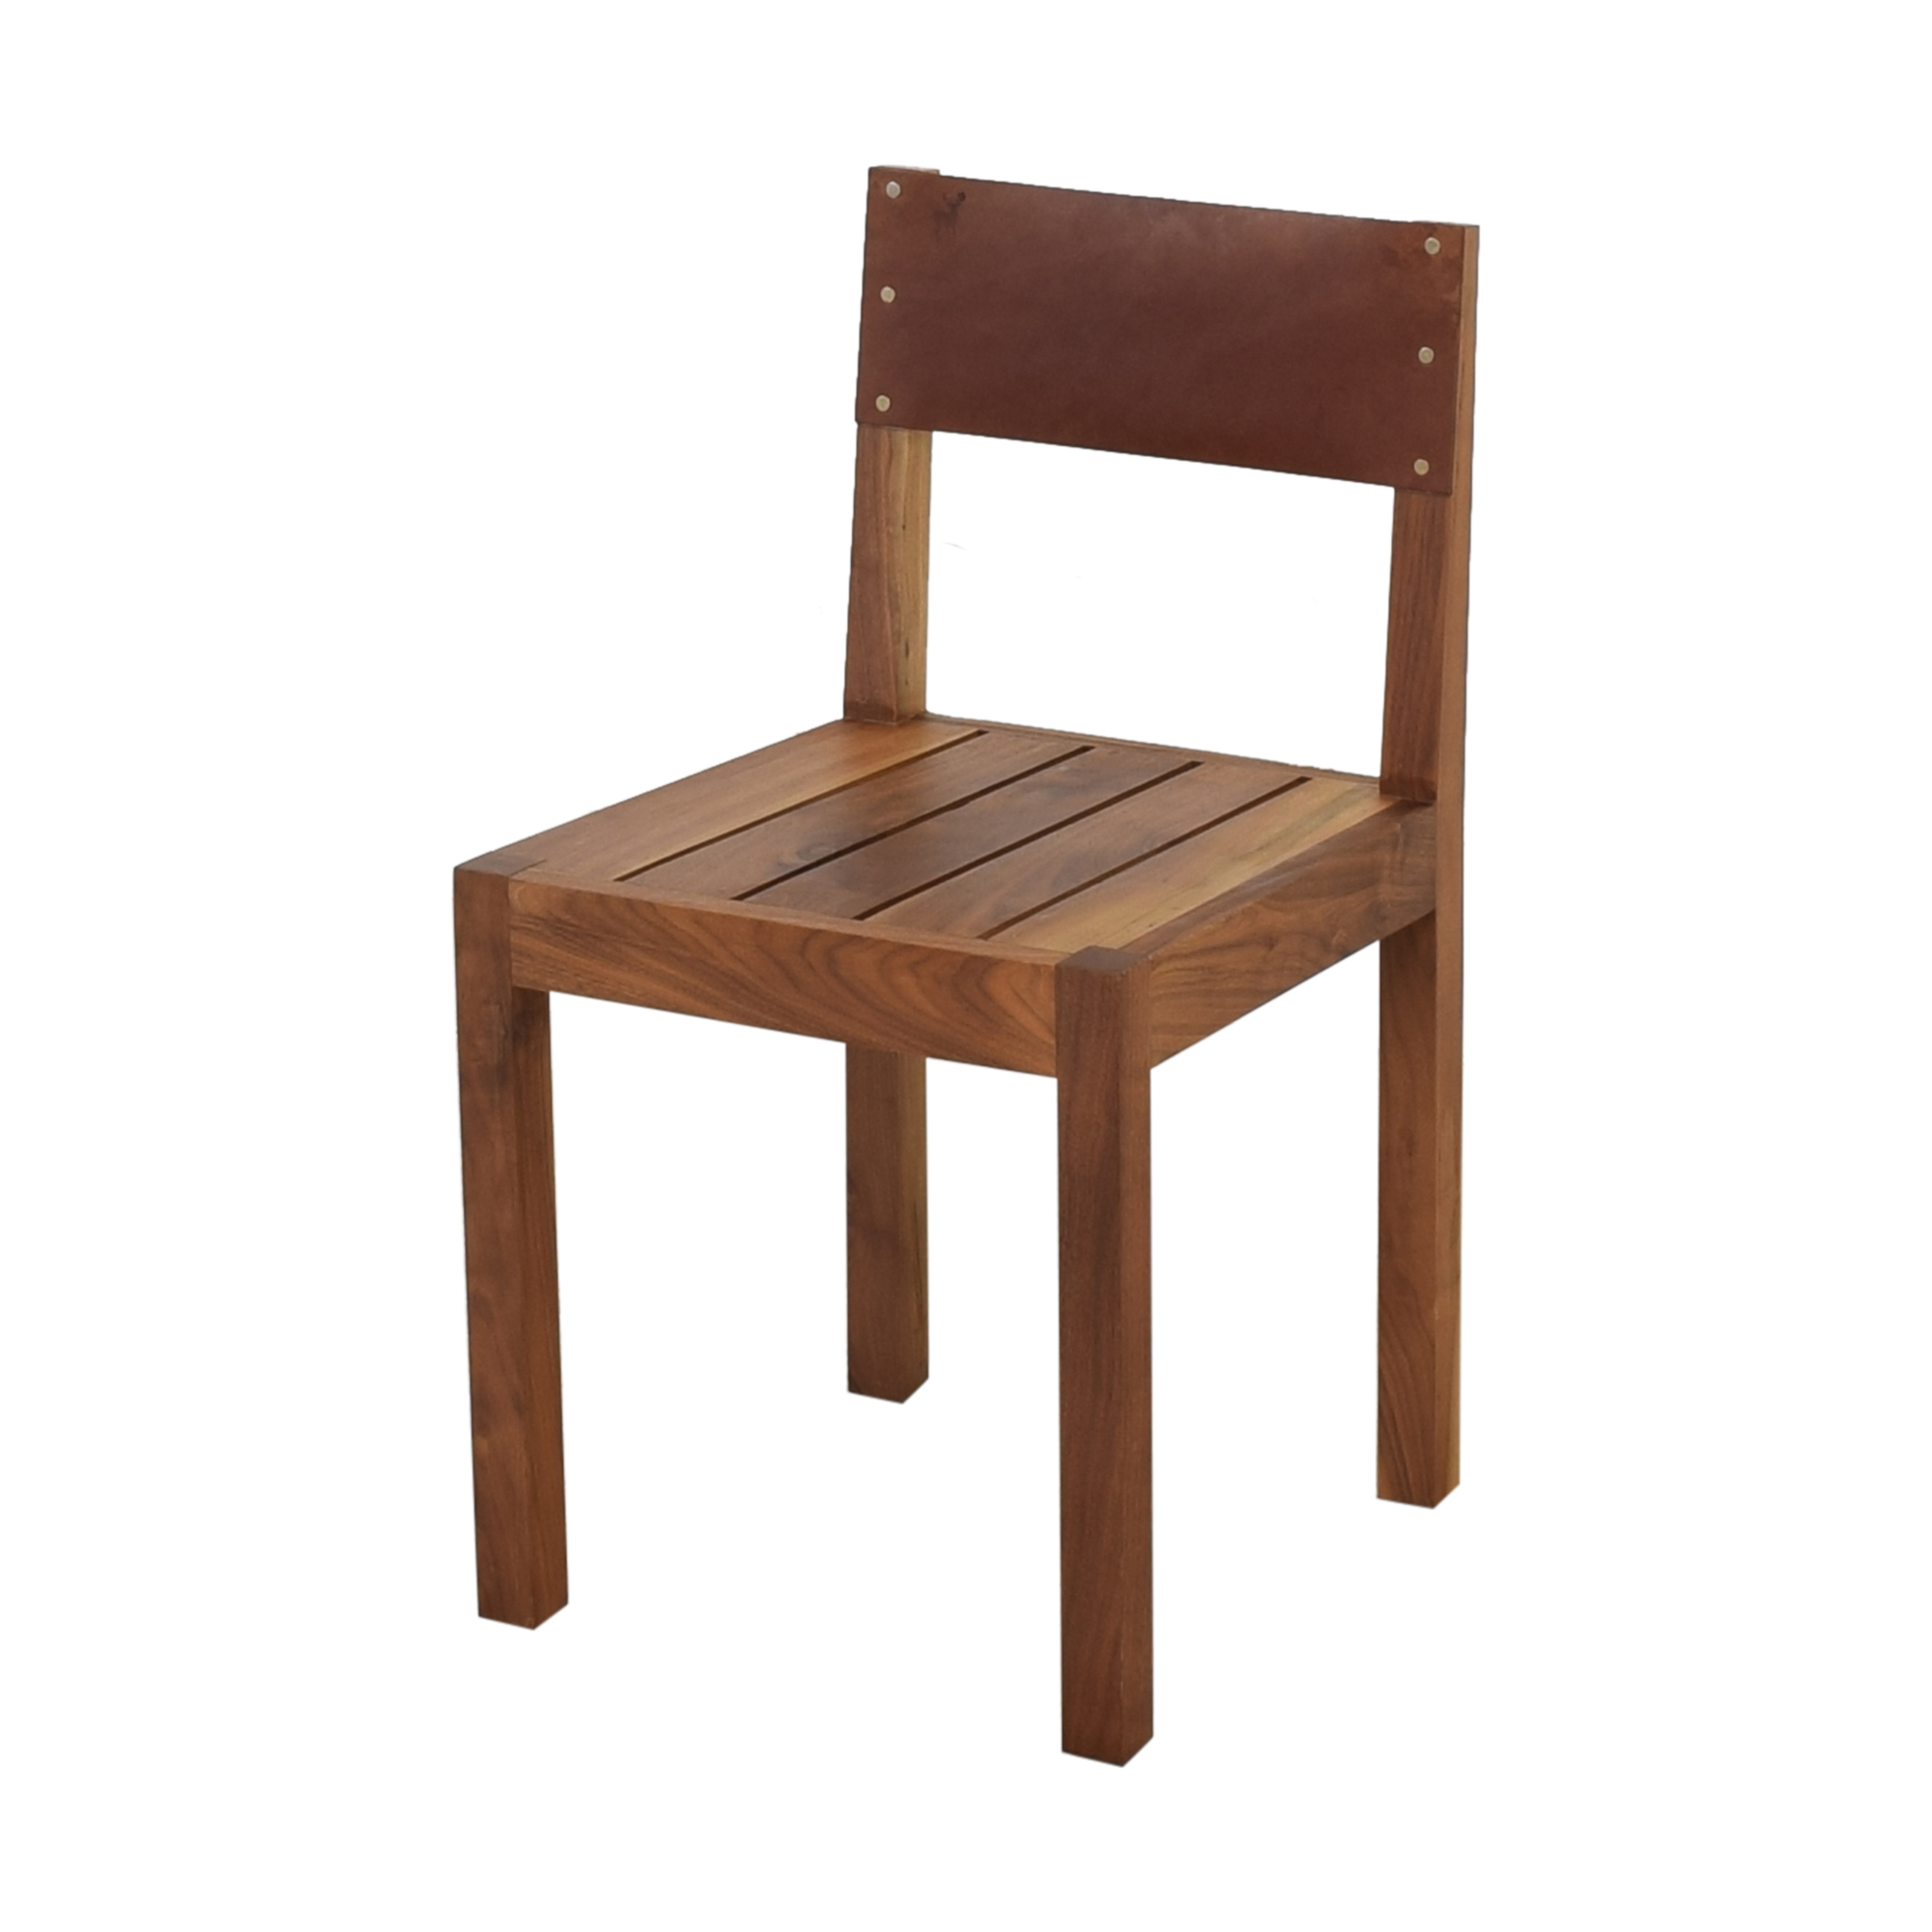 Organic Modernism Organic Modernism Leather Back Dining Chair Dining Chairs